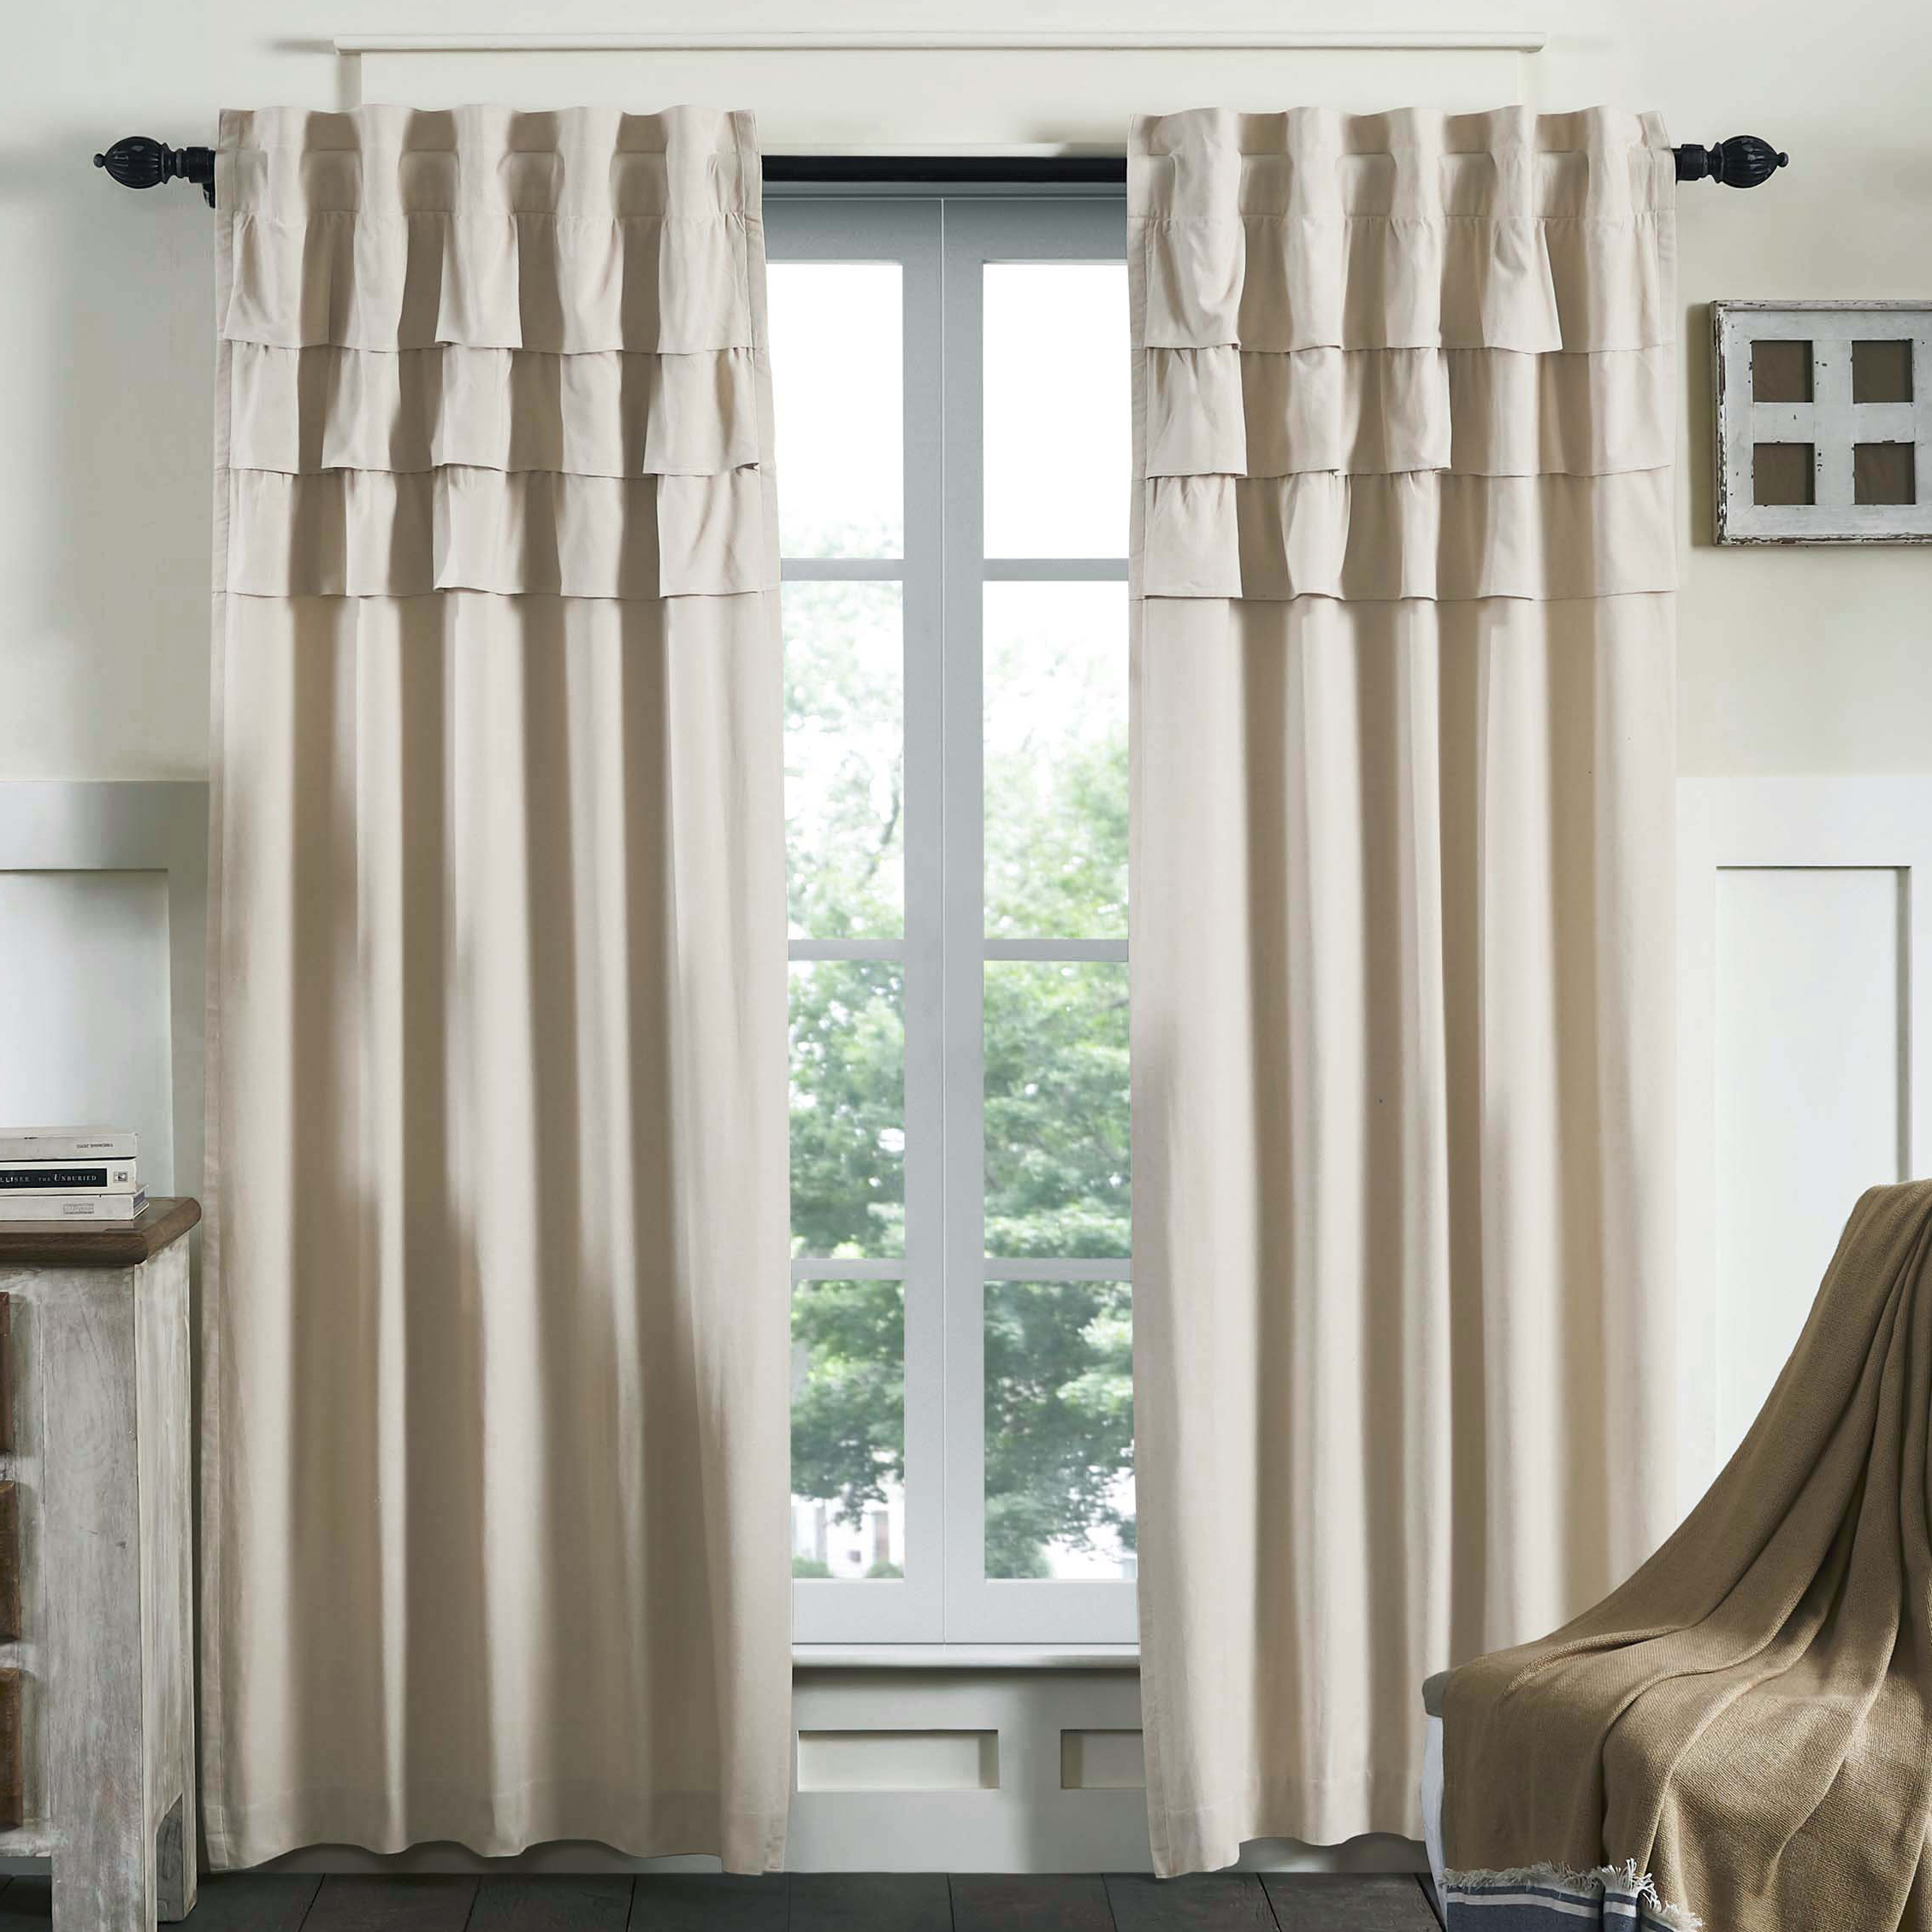 Buy Curtains Buy Country Curtains And Farmhouse Style Decor Free Shipping